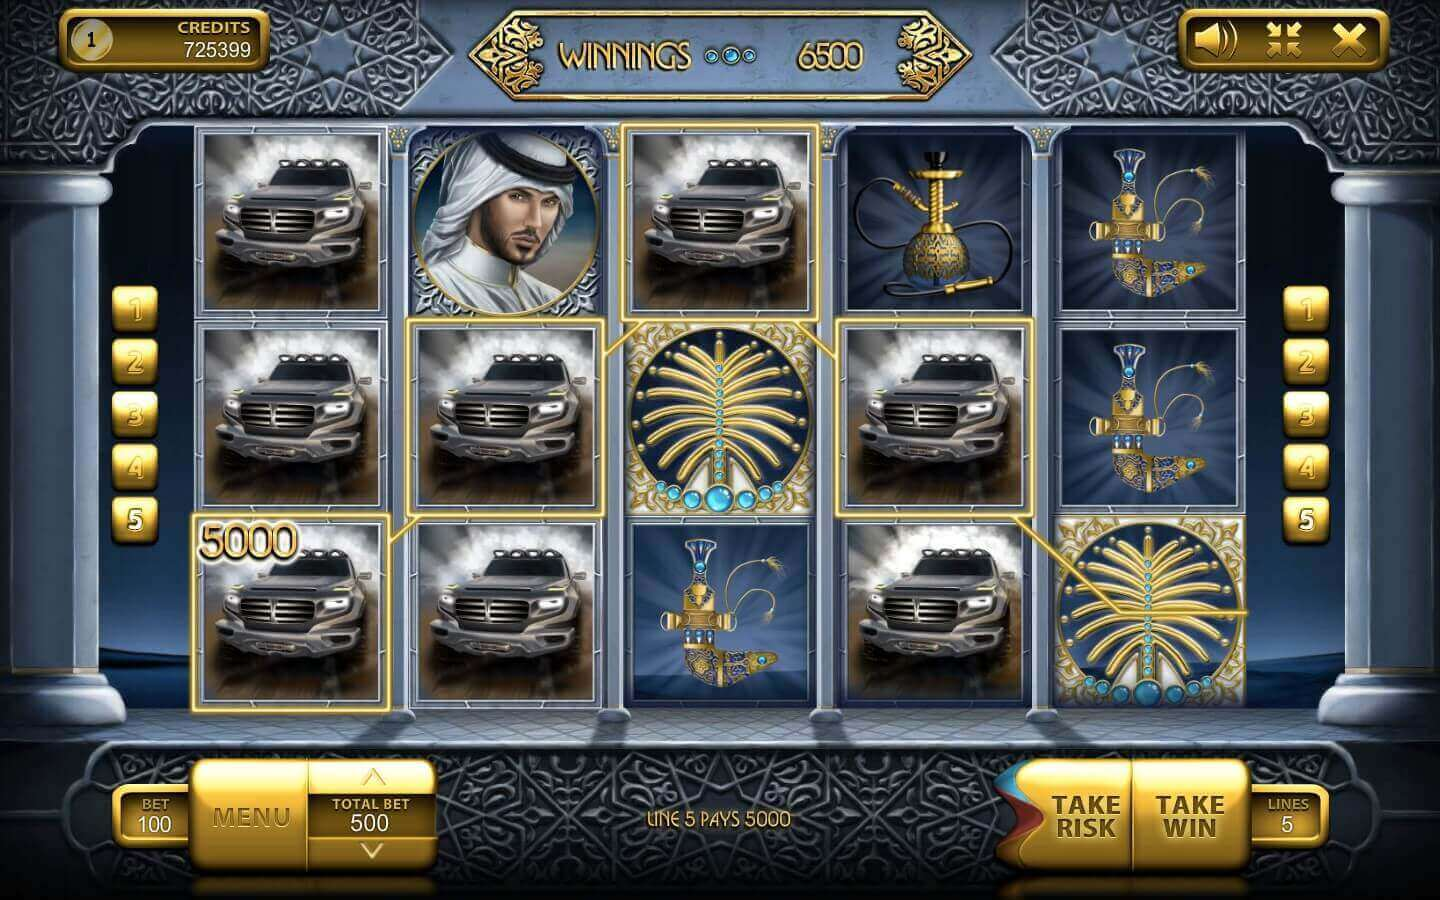 The emirate pokie play demo